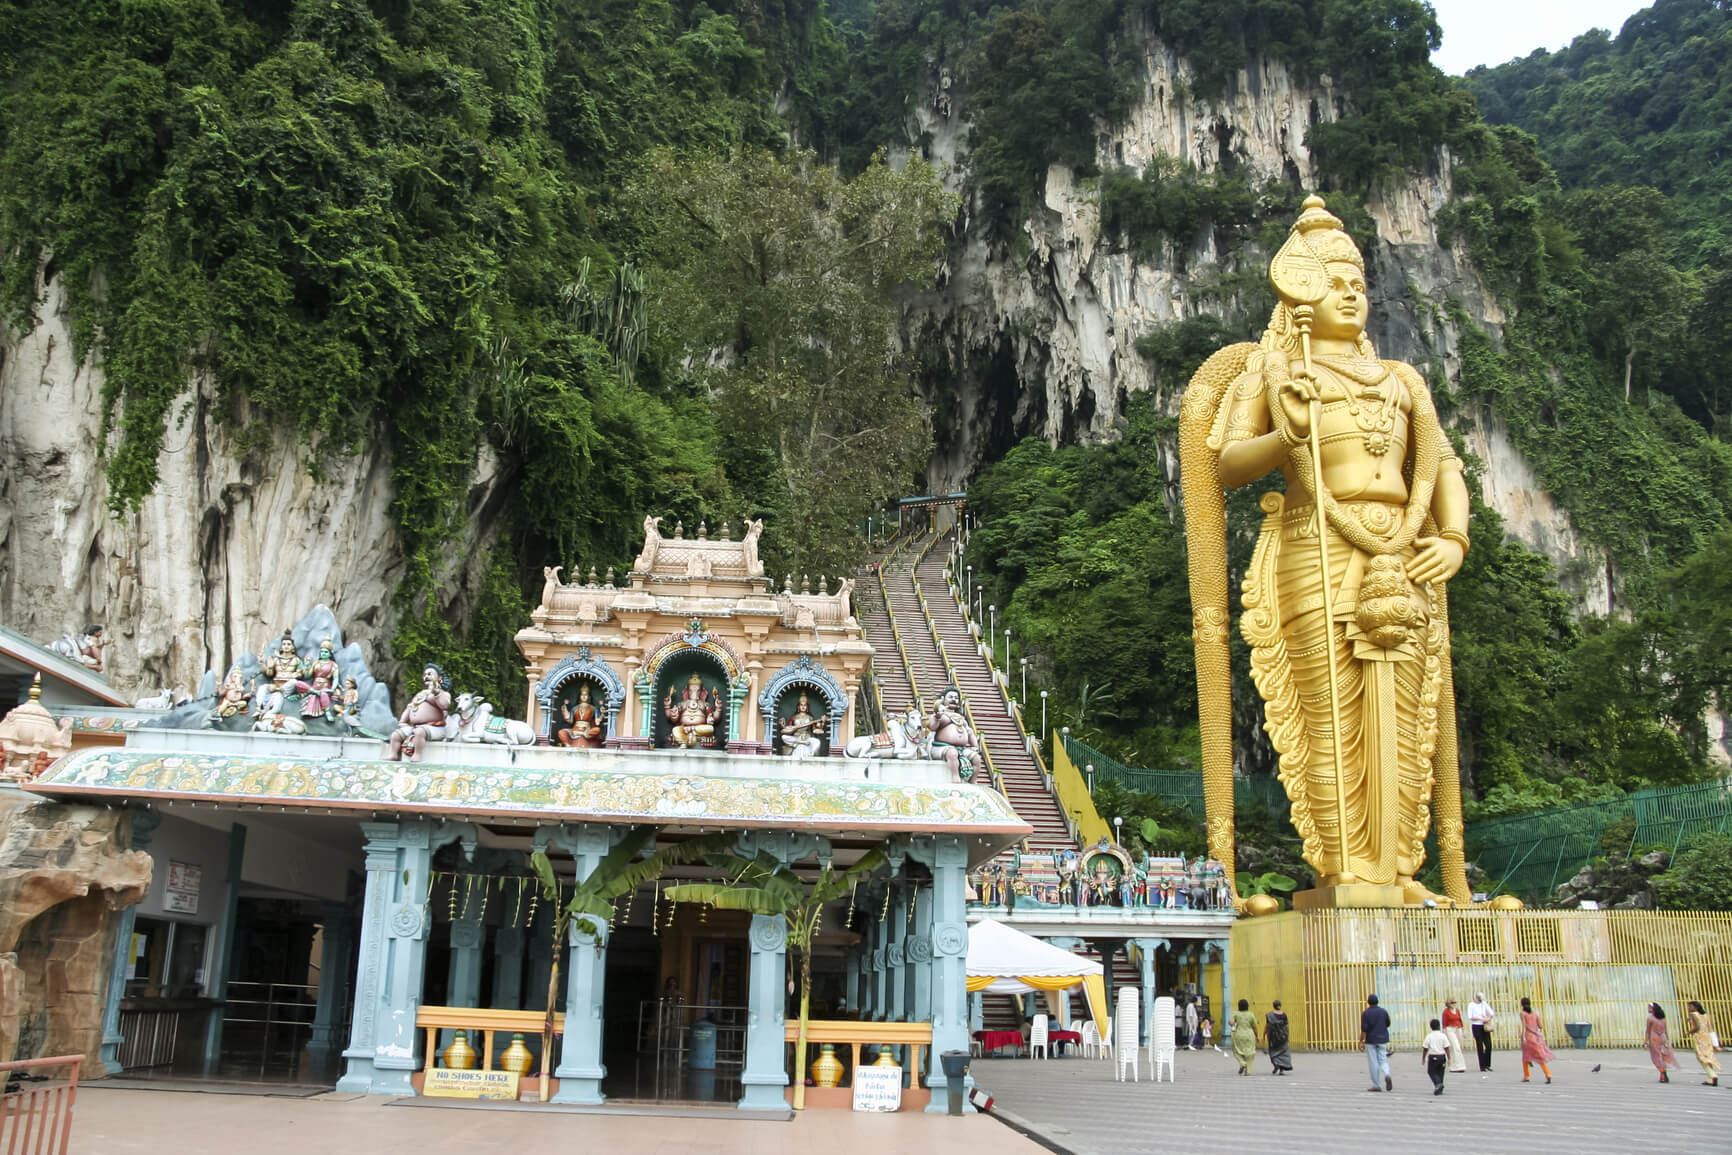 New York to Kuala Lumpur, Malaysia for only $491 roundtrip